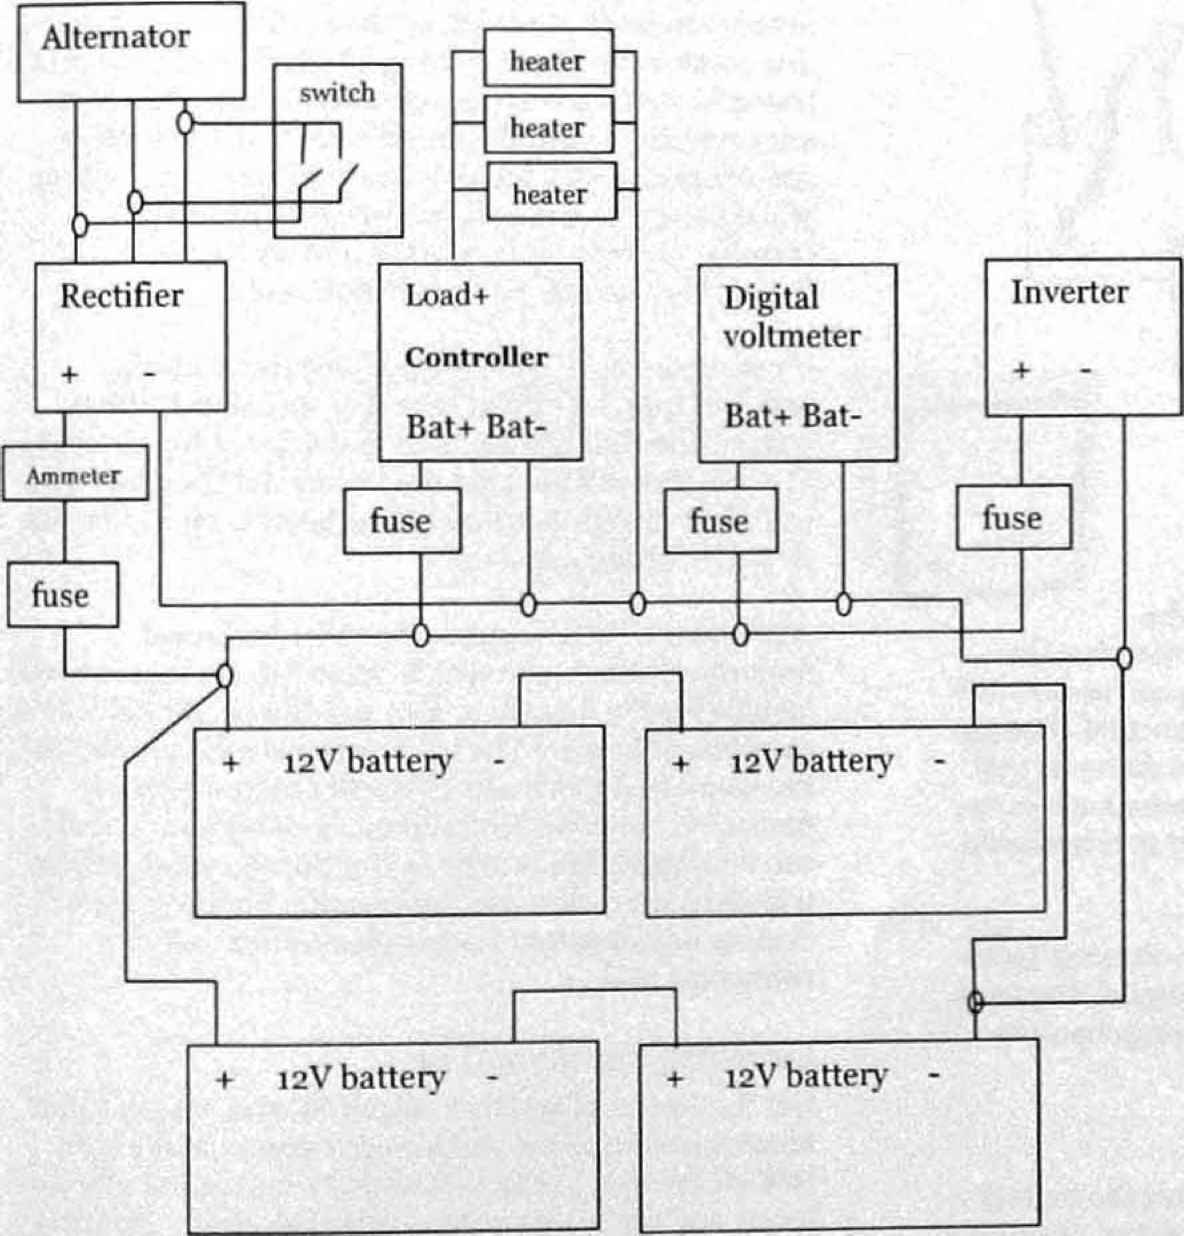 Test Alternator Circuit Diagram